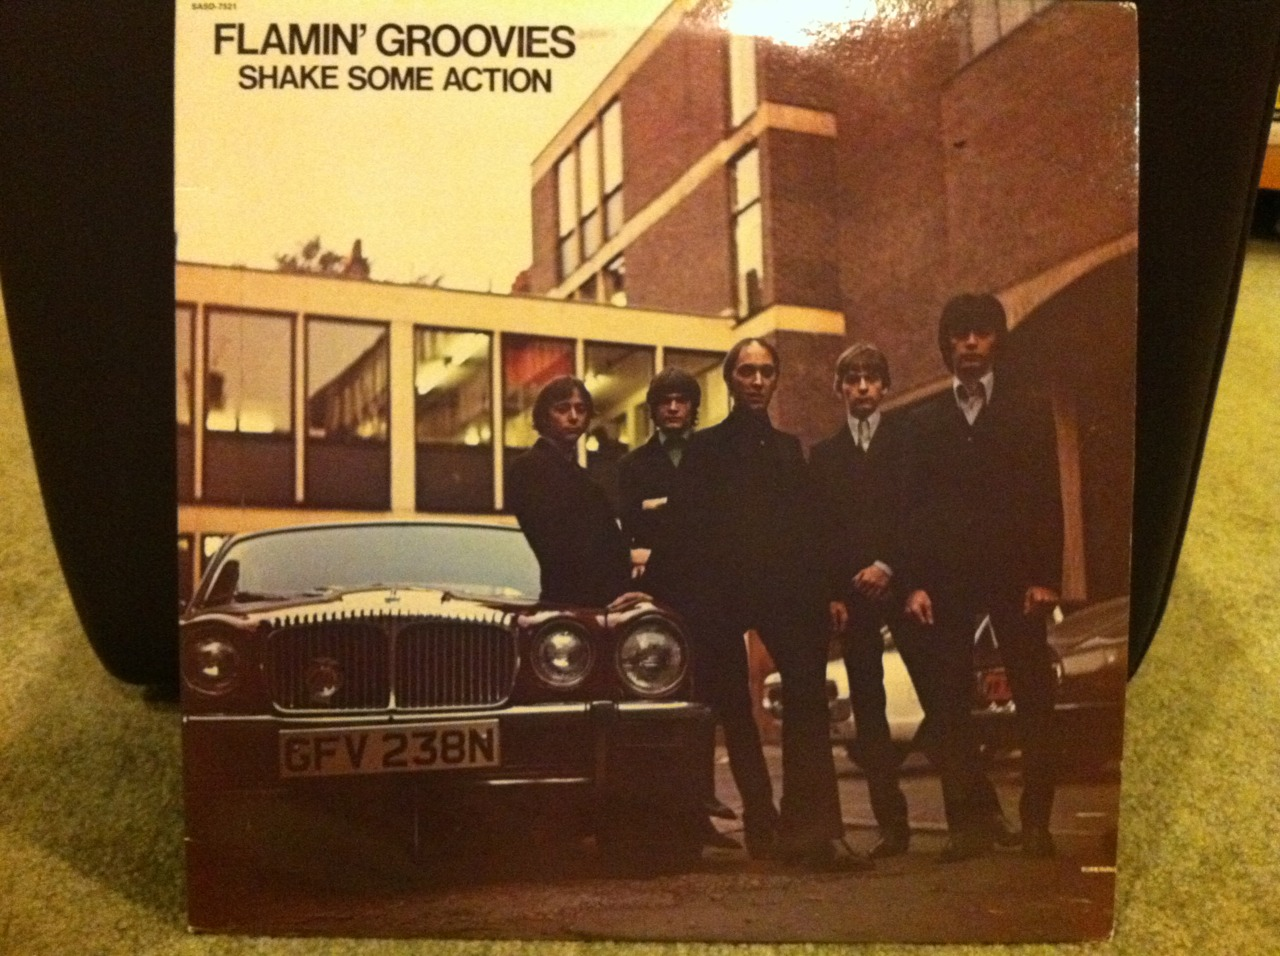 "Bust Out At Full Speed!!!    The Flamin' Groovies are one of the most awesome (if slightly confusing) bands ever! I'll cover the confusion in the  For Weirdos Only  section below. This long-player - Shake Some Action - is my favorite Flamin' Groovies album. Of the second era. This is the Cyril Jordan led version of the band with Chris Wilson singing vocals. It sounds real treble-y and jangle-y and super rocking. To my ears it sounds like The Beatles married Bob Dylan and gave birth to their baby - the Flamin' Groovies - on a flamin' red Rickenbacker 12 string electric guitar.    Every time I listen to this album it takes me back to junior high. I remember gambling on this album because it looked so cool and it was on the Sire label. I loved the Ramones and the Talking Heads at the time and they were on Sire so I thought these Flamin' Groovies had promise. And promise they did. They promised to kick me in the arse with every listen. They rocked hard and there's not a weak song on this record. Not one.   There's only one weak thing about this album in my opinion. It sounds like it was recorded beneath a million cotton balls inside a gauze wrapped cocoon of felt. Maybe I'm exaggerating. This is one of very few instances where I think the recent Rhino UK collection ""Flamin' Groovies At Full Speed: The Complete Sire Recordings"" sounds better on compact disc. If you know me, then you know I love the sound of wax. Vinyl. The LP. The rekkid. But this one sounds better on this new CD collection.    Flamin' Groovies At Full Speed: The Complete Sire Recordings is a great deal because it sounds awesome, you get some unreleased and rare tracks and if you don't buy it you'll be making a huge mistake. It contains all three of their mind-blowing Sire records - Shake Some Action, Flamin' Groovies Now and Jumpin' In The Night. Trust me. They're awesome. Three slabs of wax on two compact discs. Do it!   In large part, I credit the Flamin' Groovies with getting me interested in a band I'll cover in much detail later - The Beatles.      For Weirdos Only:   Shake Some Action came out in 1976. It was their first new LP of new music since 1971's Teenage Head (my favorite album of the 1st era). Shake Some Action's sound is nothing like that of the first era Flamin' Groovies. That band had a harder Stones-y rockabilly edge that was amazing in it's way. I happen to love both eras - the Roy Loney/Cyril Jordan led first era  and  the Cyril Jordan/Chris Wilson led second era.    For Weirdos Only (part 2):   If you look closely, you can see a small (¾"") horizontal slice in the album jacket at bottom right. Cheapskate rock 'n' rollers will recognize this right away as a ""cut-out"" record. For the uninitiated, you could find bins and bins of these ""cut-out"" records at your local record store for between $1 - $4 or so back in the 70s and 80s. They were records that didn't sell well and were ""cut"" to render them identifiable as cut-outs and then sold cheap to get rid of them. That's how I found this record. Most likely next to a Fleetwood Mac Tusk album. Yuck.    Here's an audio-only sample from Shake Some Action:   http://www.youtube.com/watch?v=L2Y5LKZPwV4"